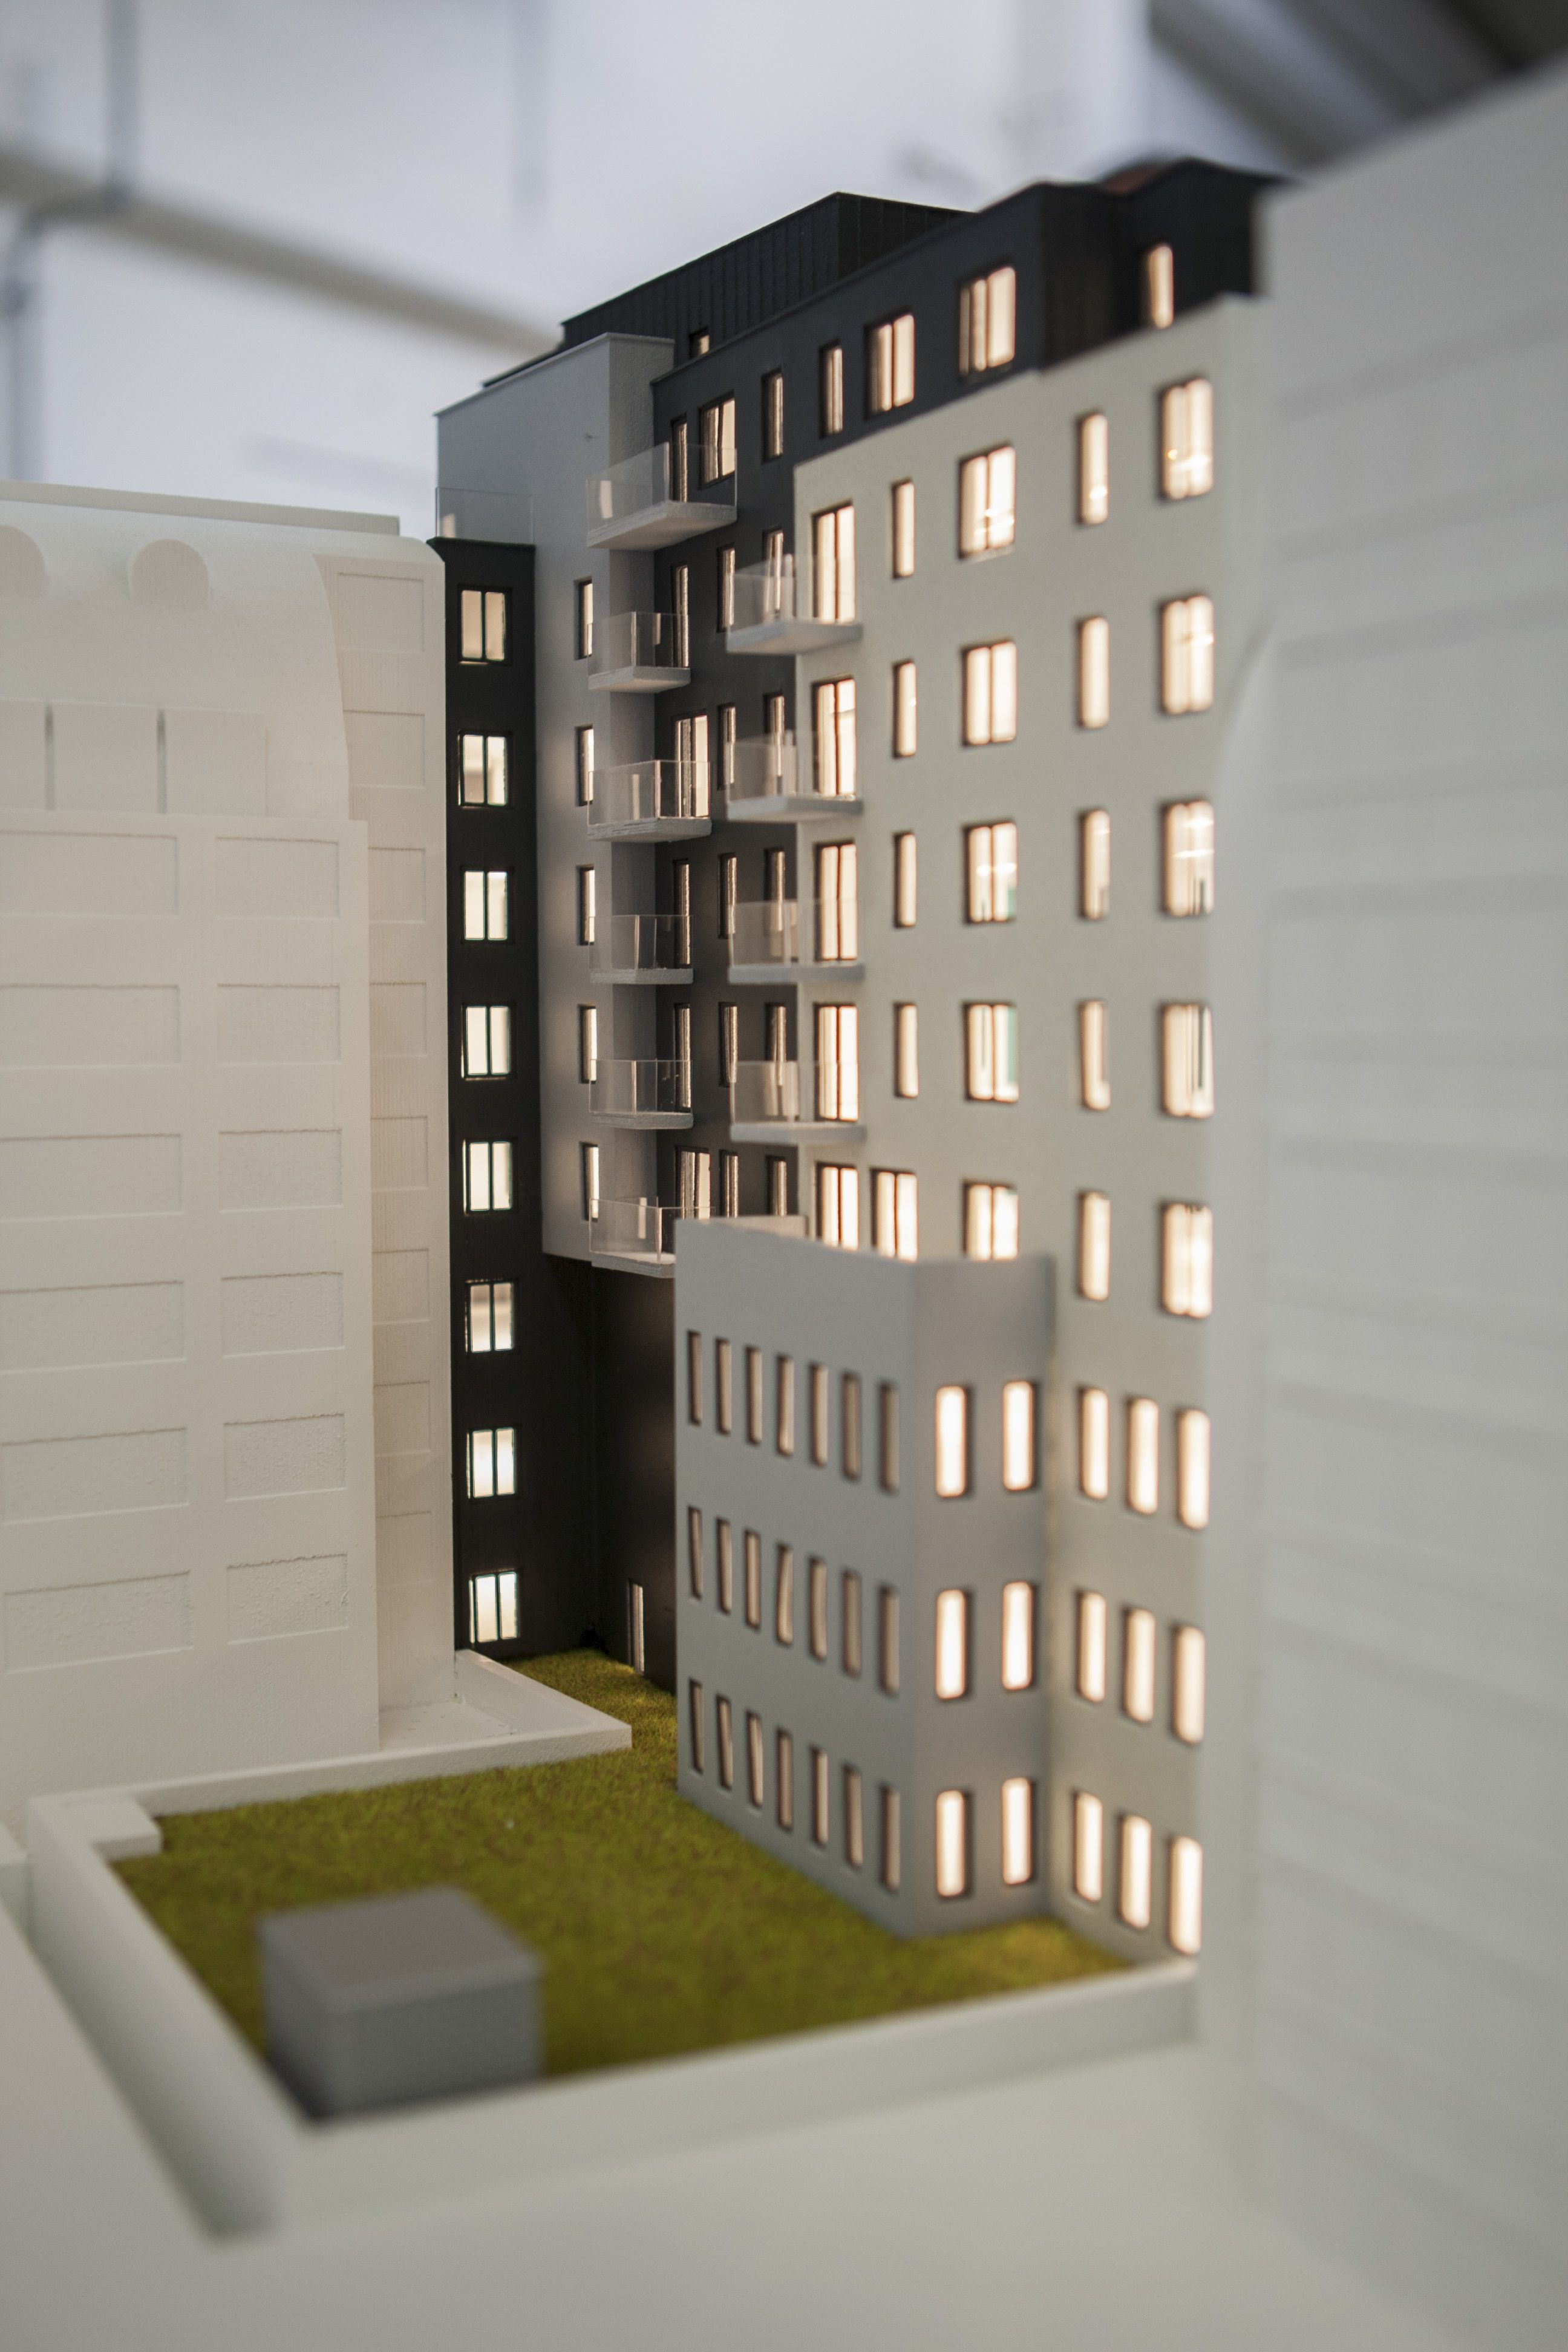 Project #Metropolis #3DPrinting #Scale #Model #Architectural #Details #Quality #Development #New #Generation # www.ziggzagg.be